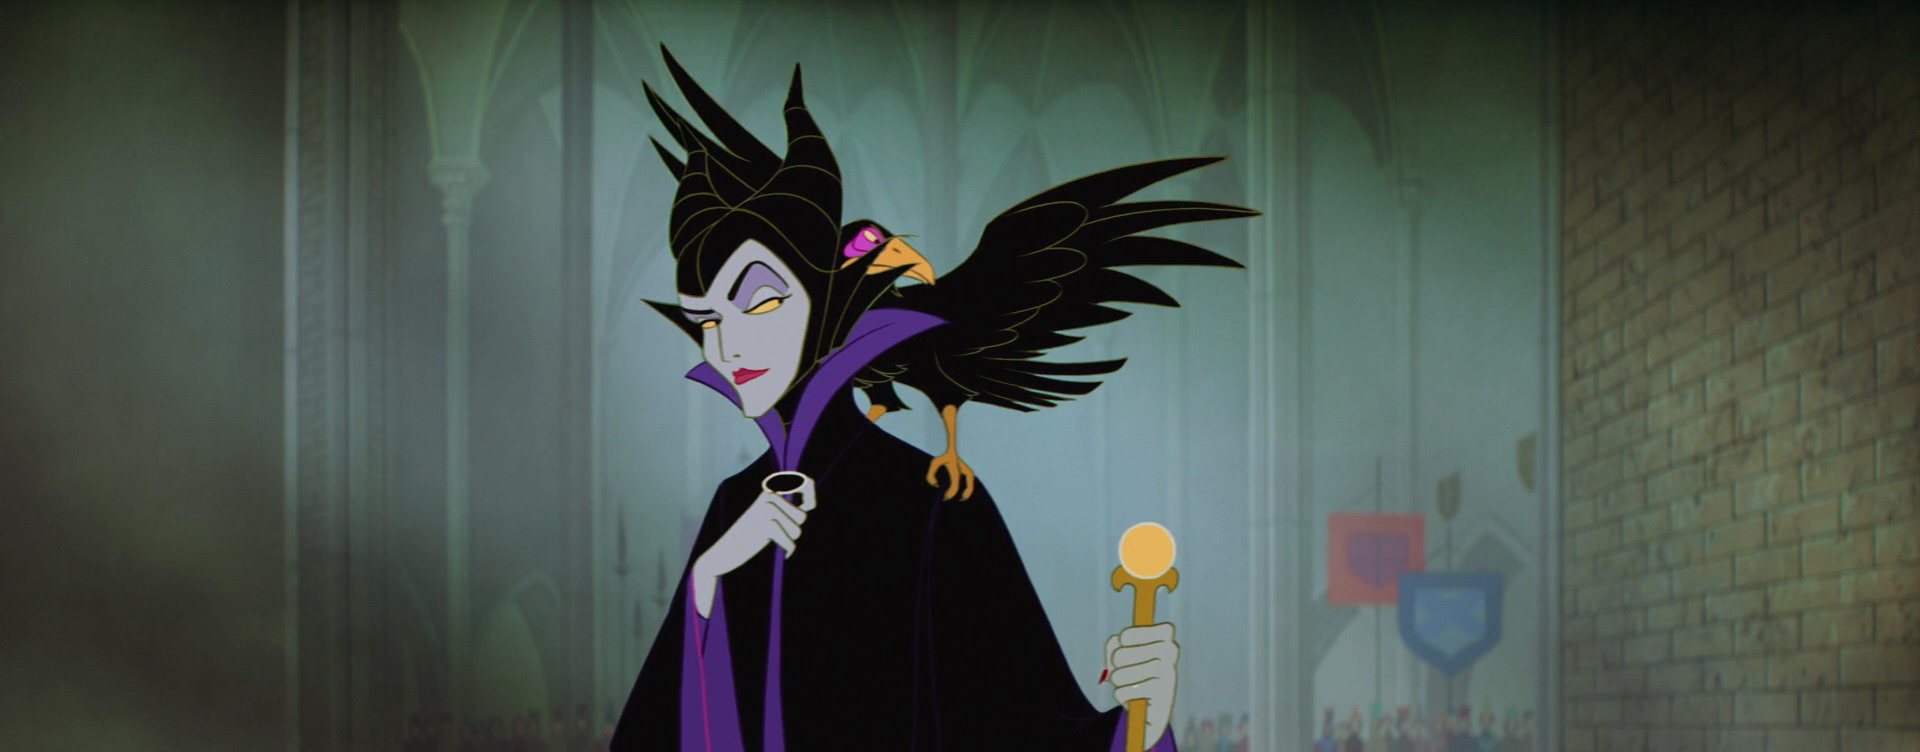 Evil Movie Review Maleficent The Brotherhood Of Evil Geeks